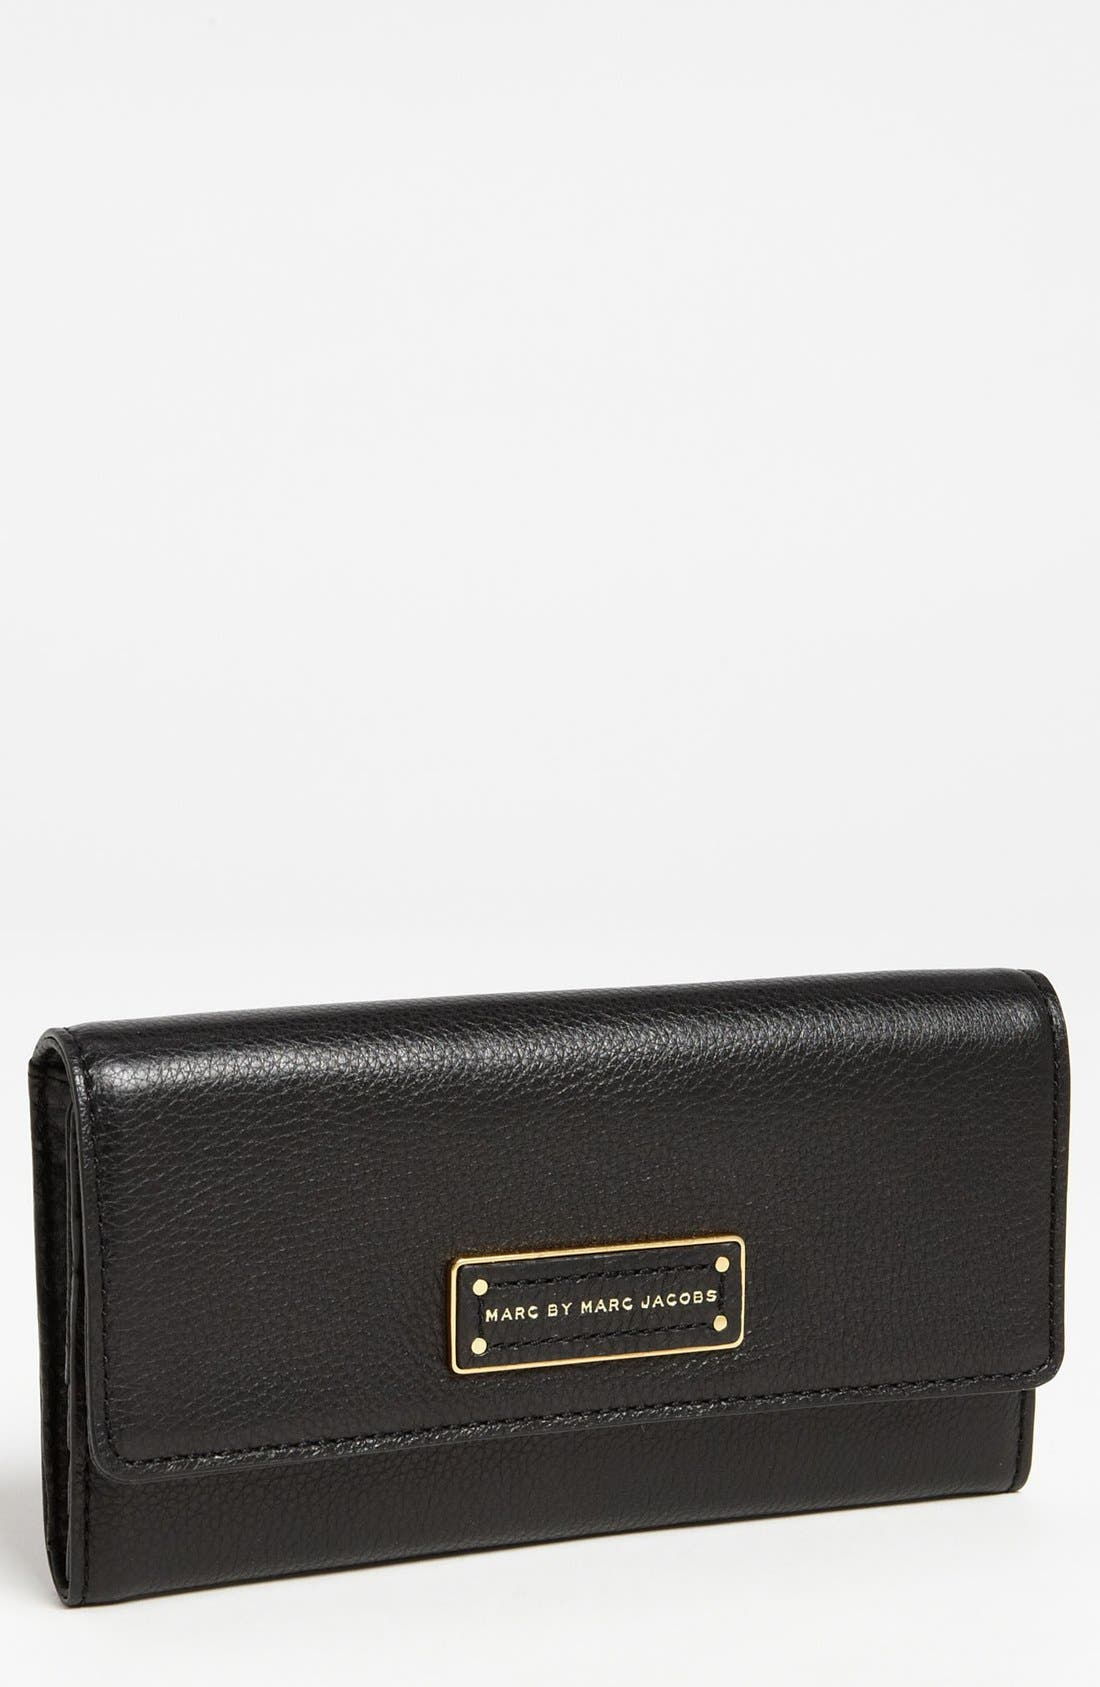 MARC JACOBS,                             MARC BY MARC JACOBS 'Too Hot to Handle' Long Trifold Wallet,                             Main thumbnail 1, color,                             001